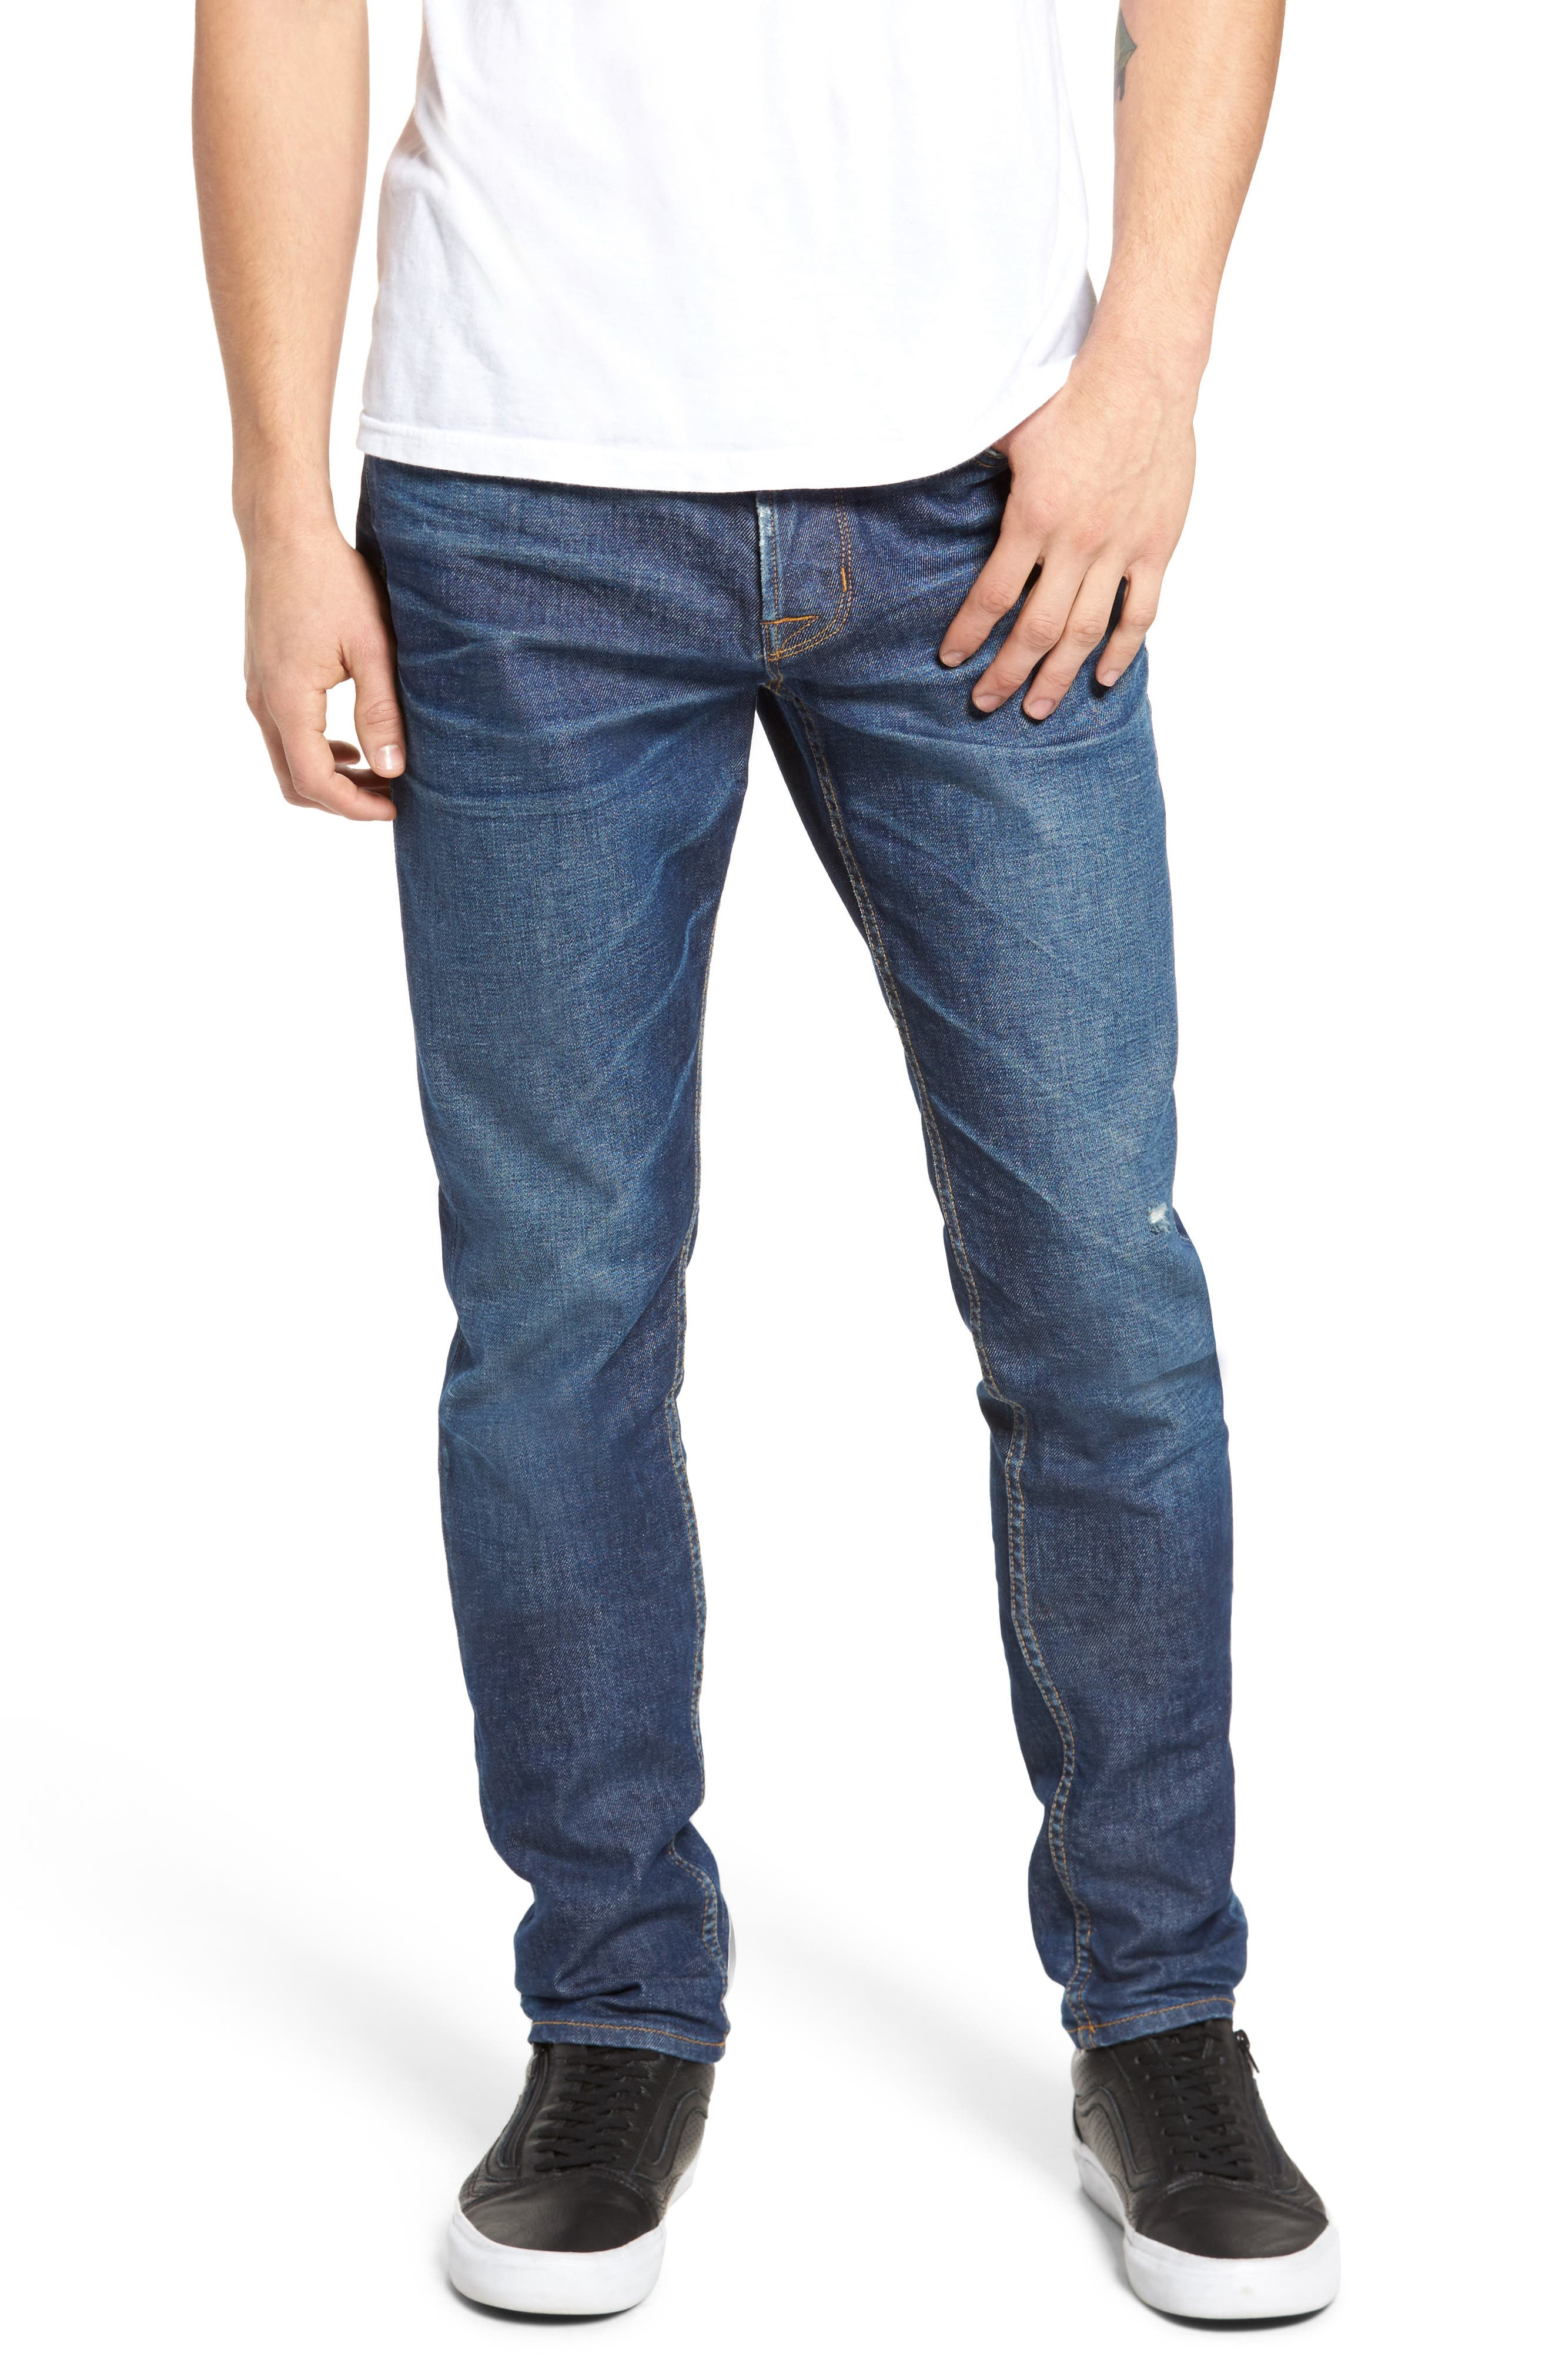 Alternate Image 1 Selected - Hudson Jeans Axl Skinny Fit Jeans (Falling Down)